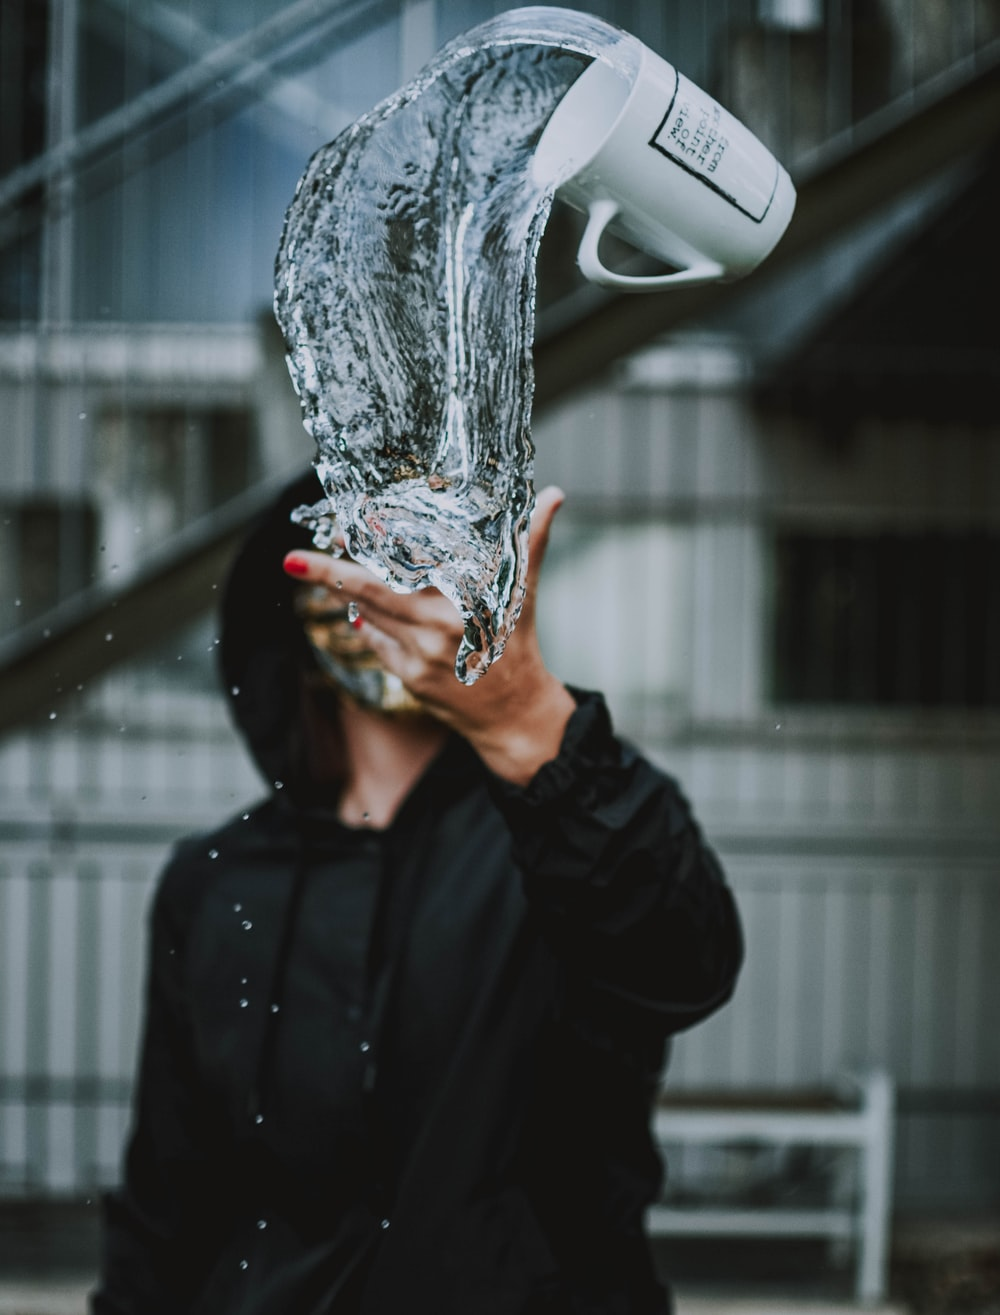 person throw mug with water